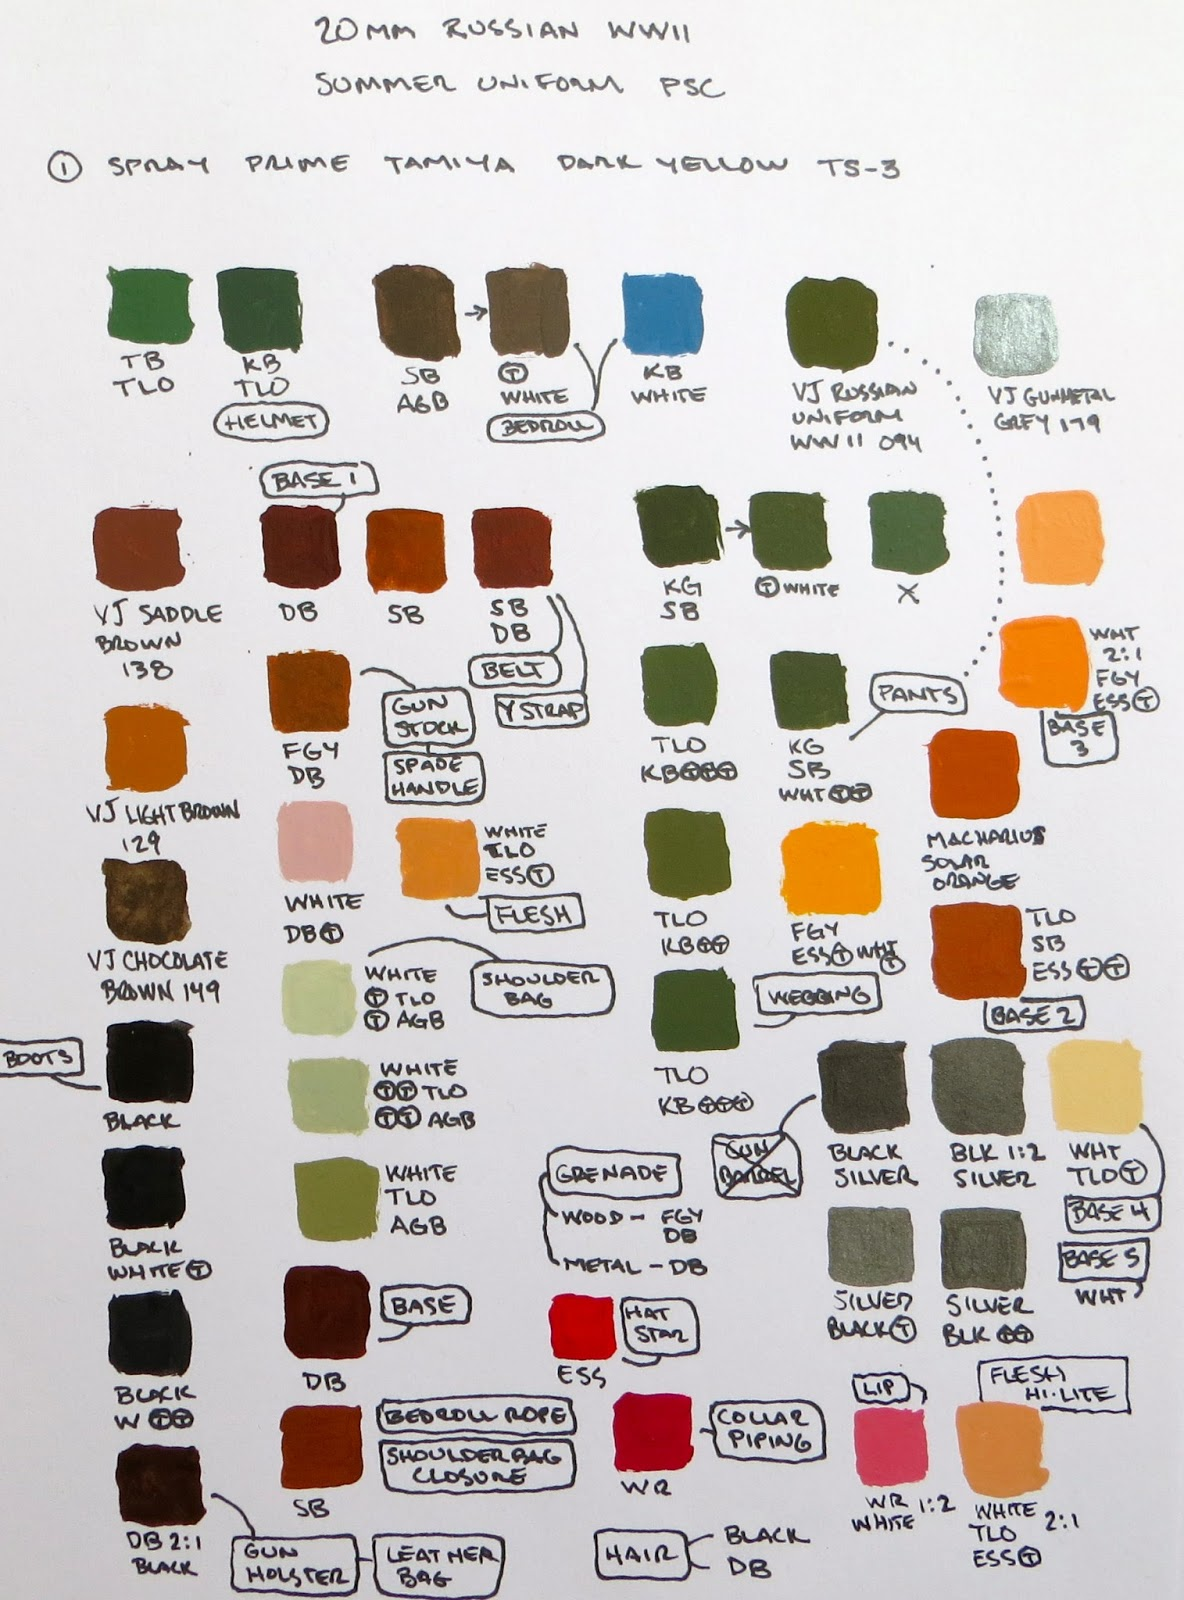 Co color painting games - Using Only 13 Pots Of Paint Keeps My Desk Tidy Allows More Money To Be Spent On Models And Also Allows Me To Learn About Color Mixing